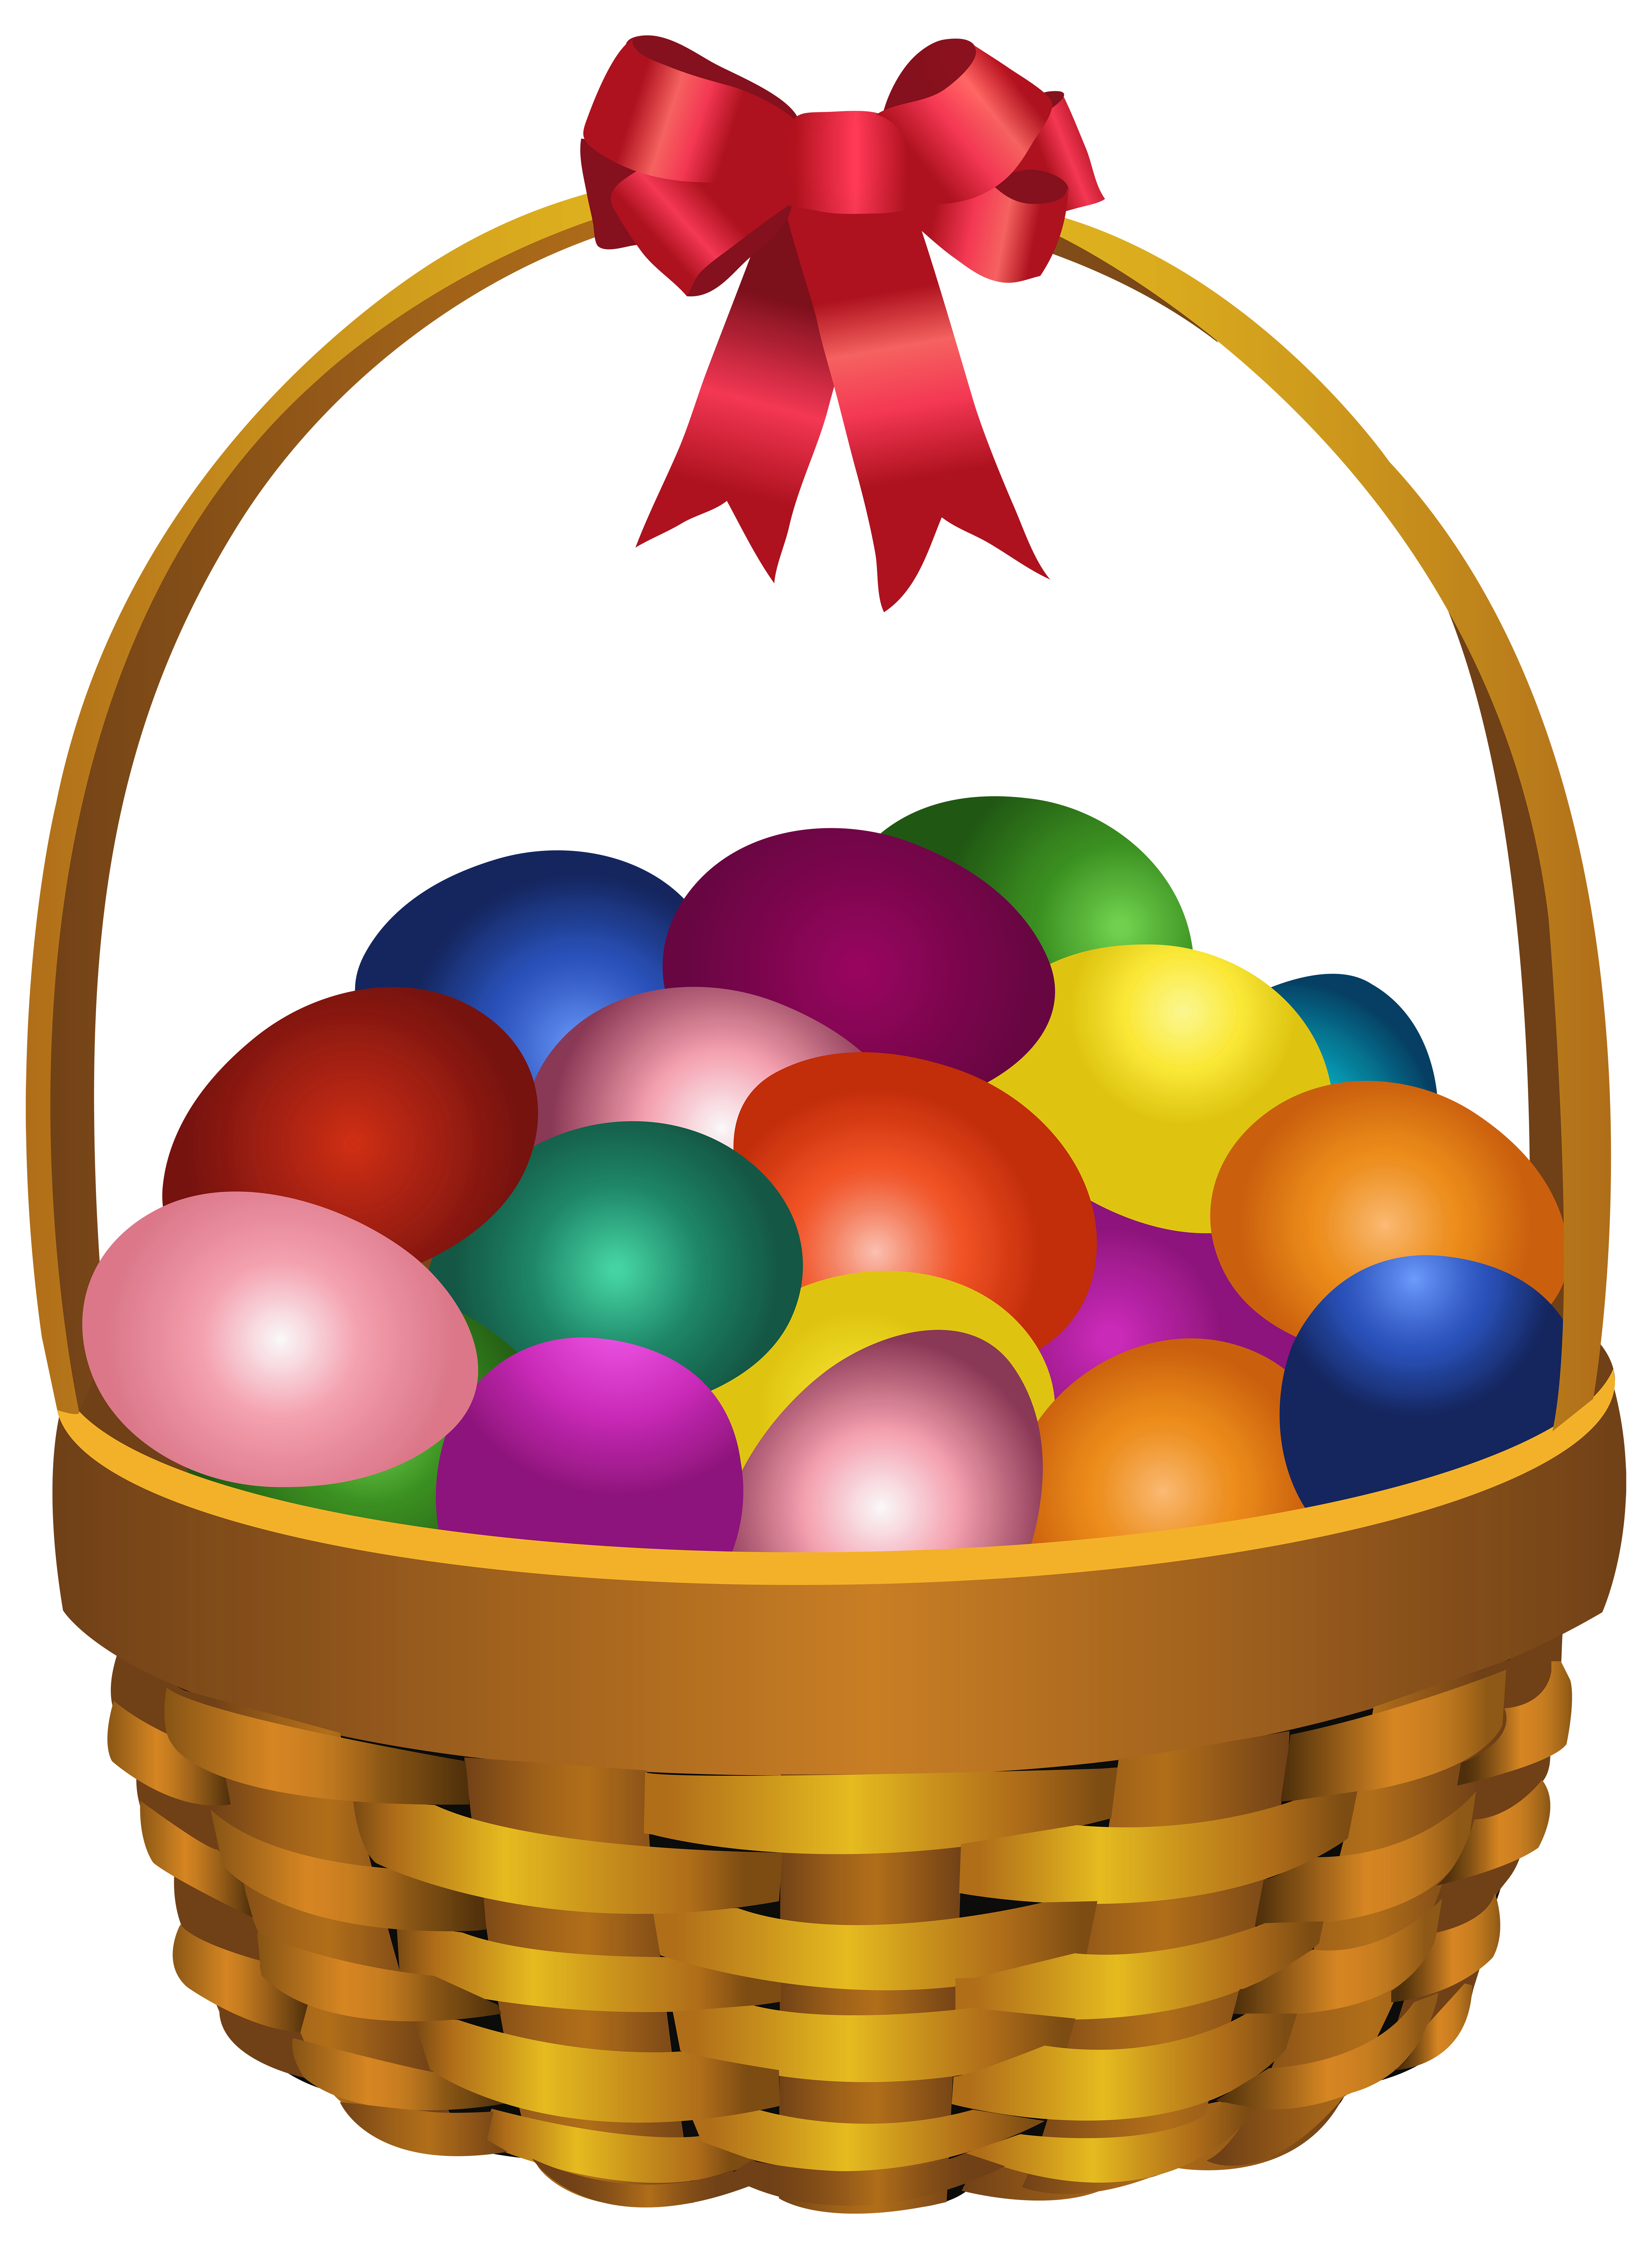 5142x7000 Easter Egg Clipart, Suggestions For Easter Egg Clipart, Download